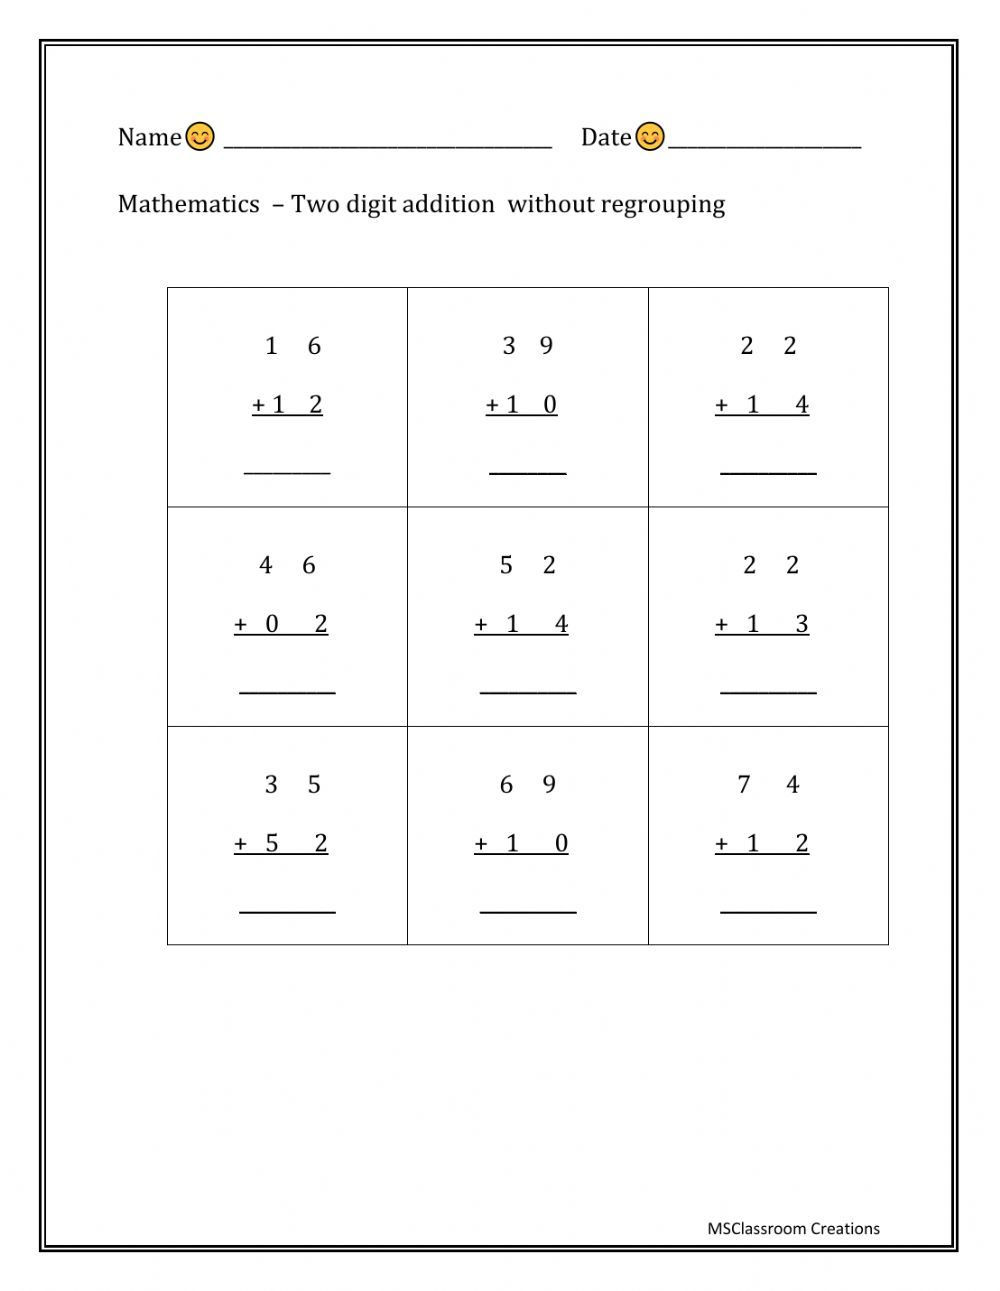 medium resolution of Two digit addition - without regrouping worksheet